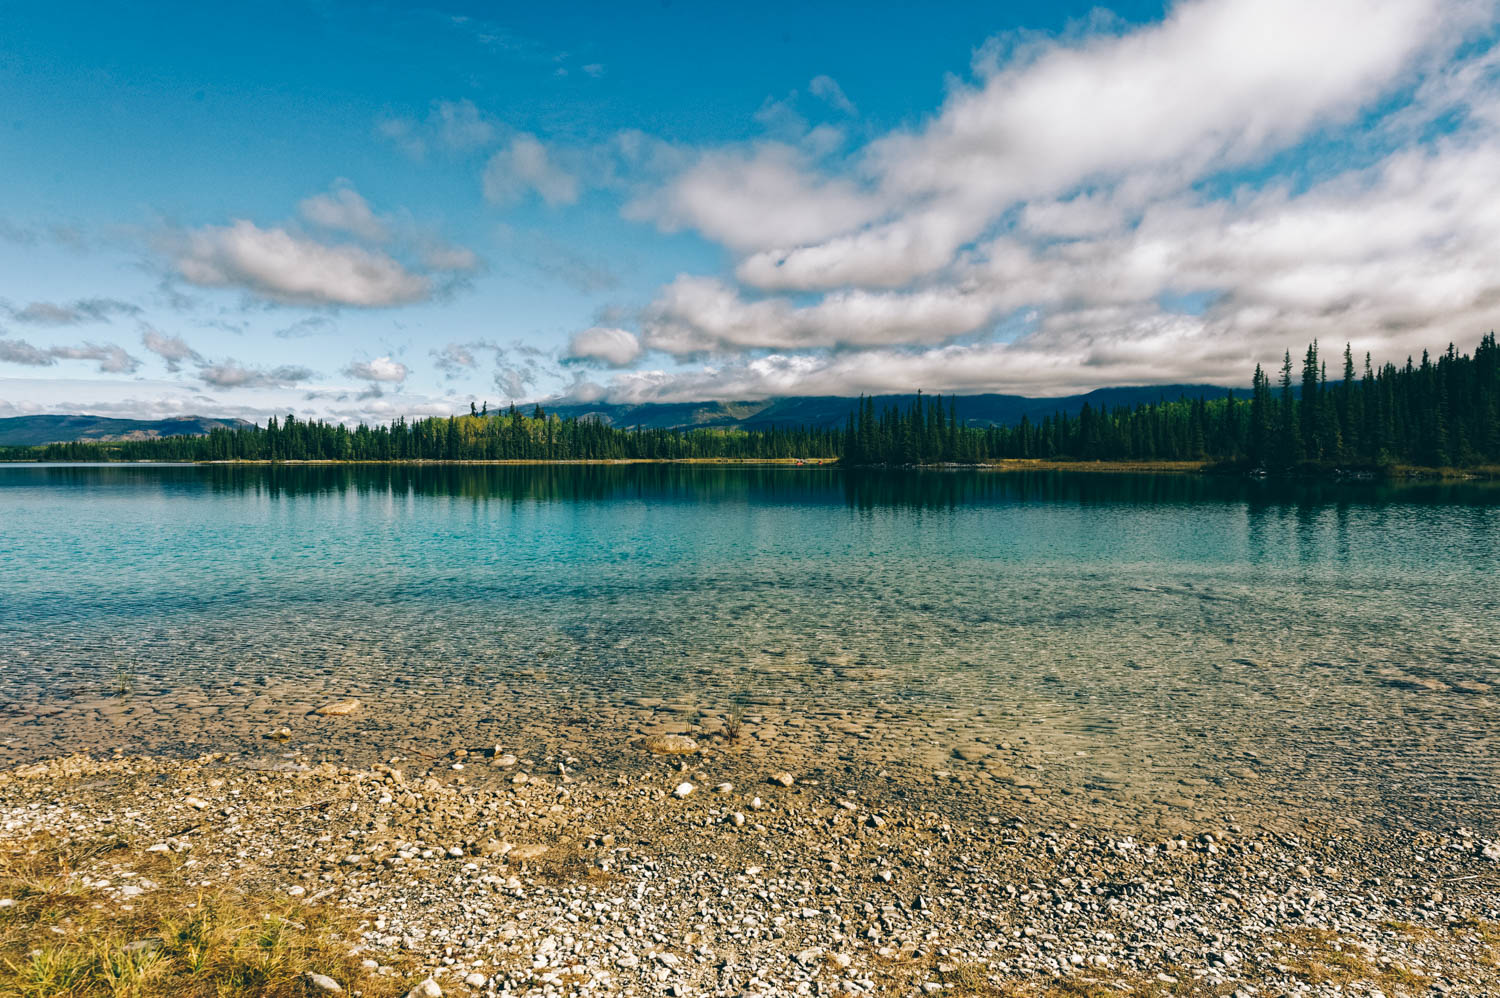 We stopped at Boya Lake on the Stewart-Cassiar Highway for a little hike.